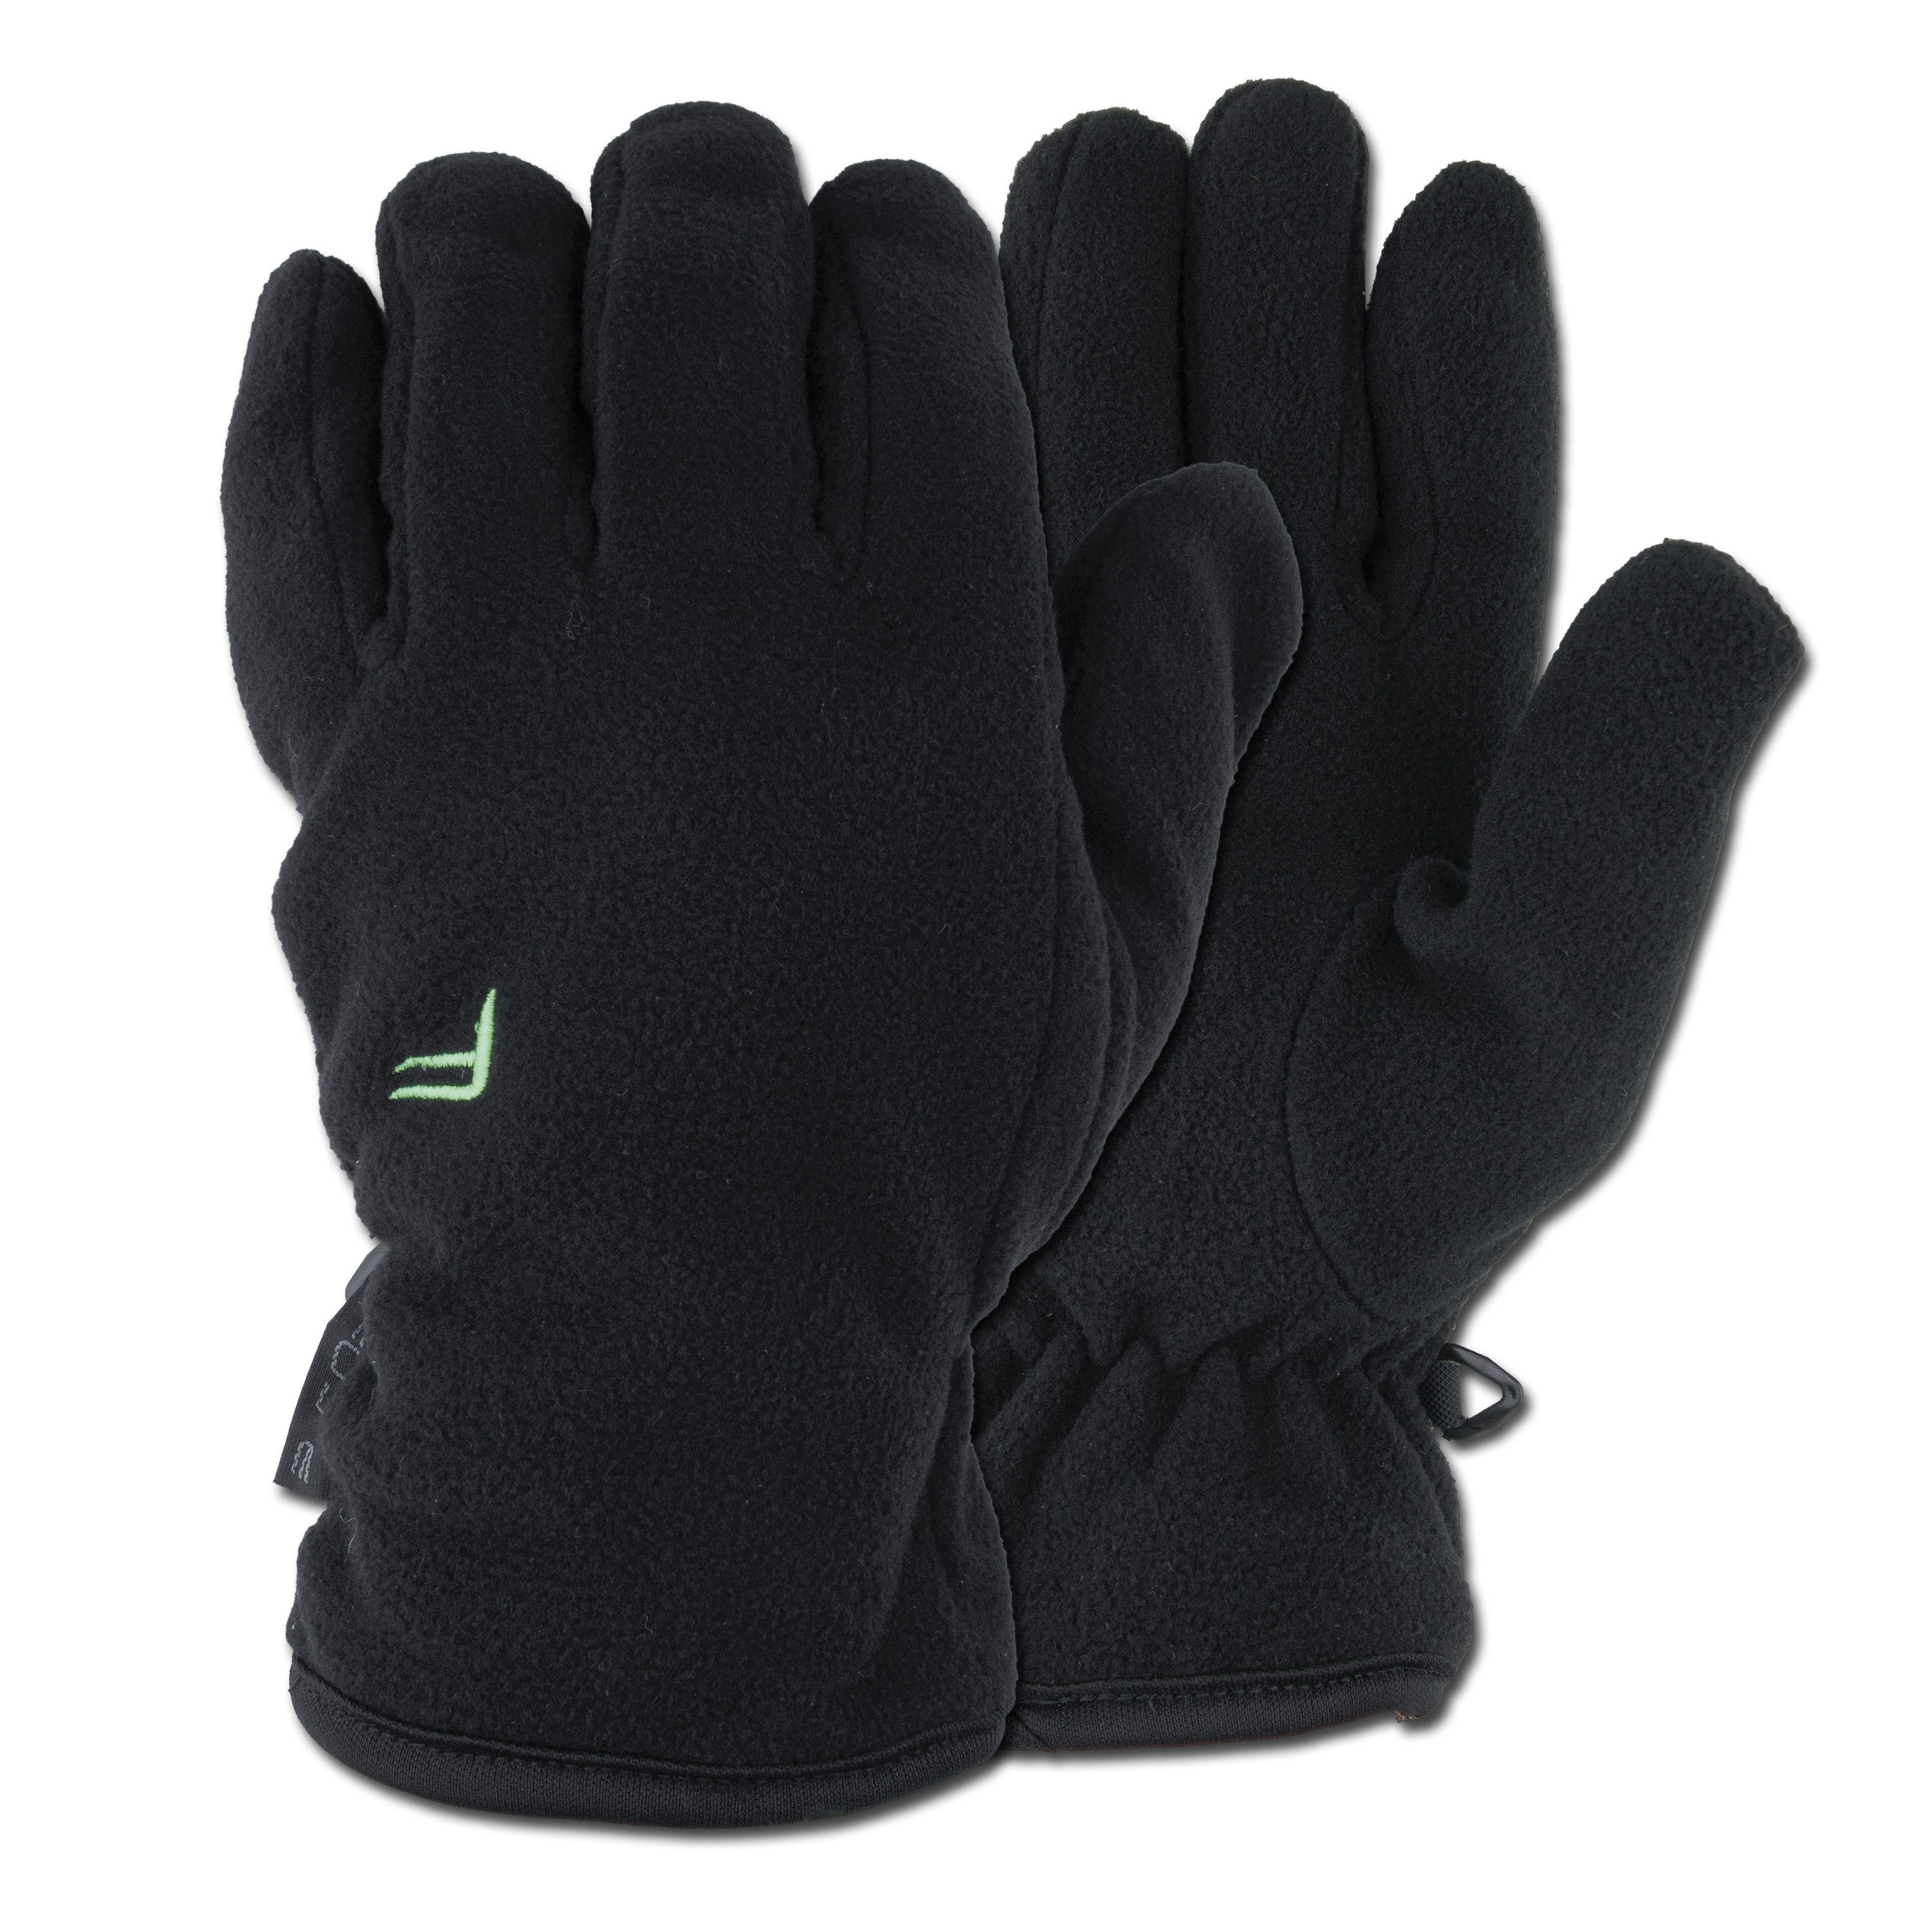 Thinsulate-Fleece Handschuhe